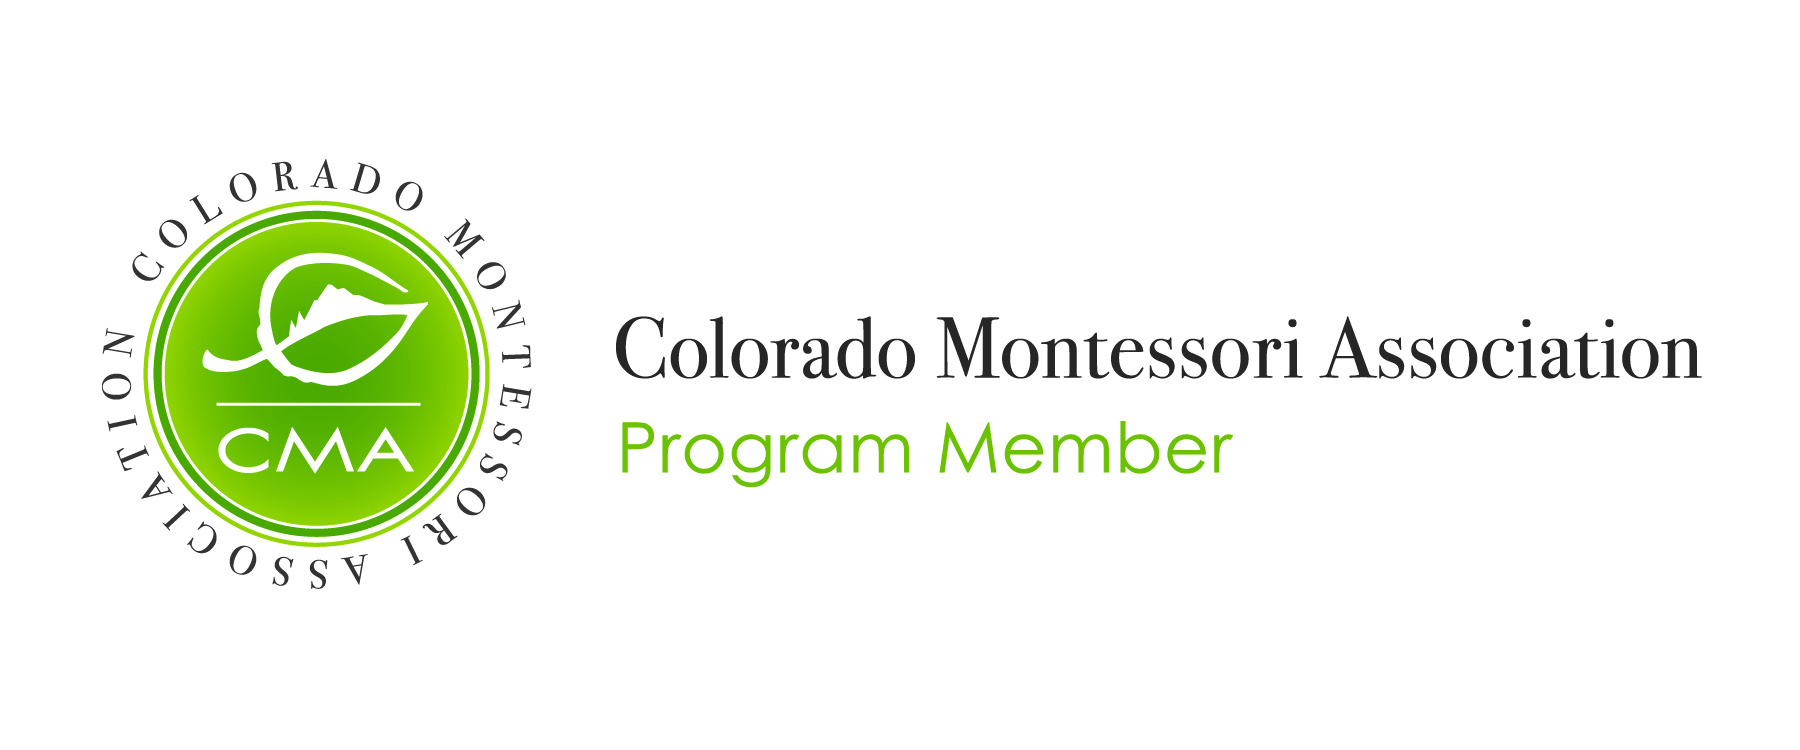 Colorado Montessori Association